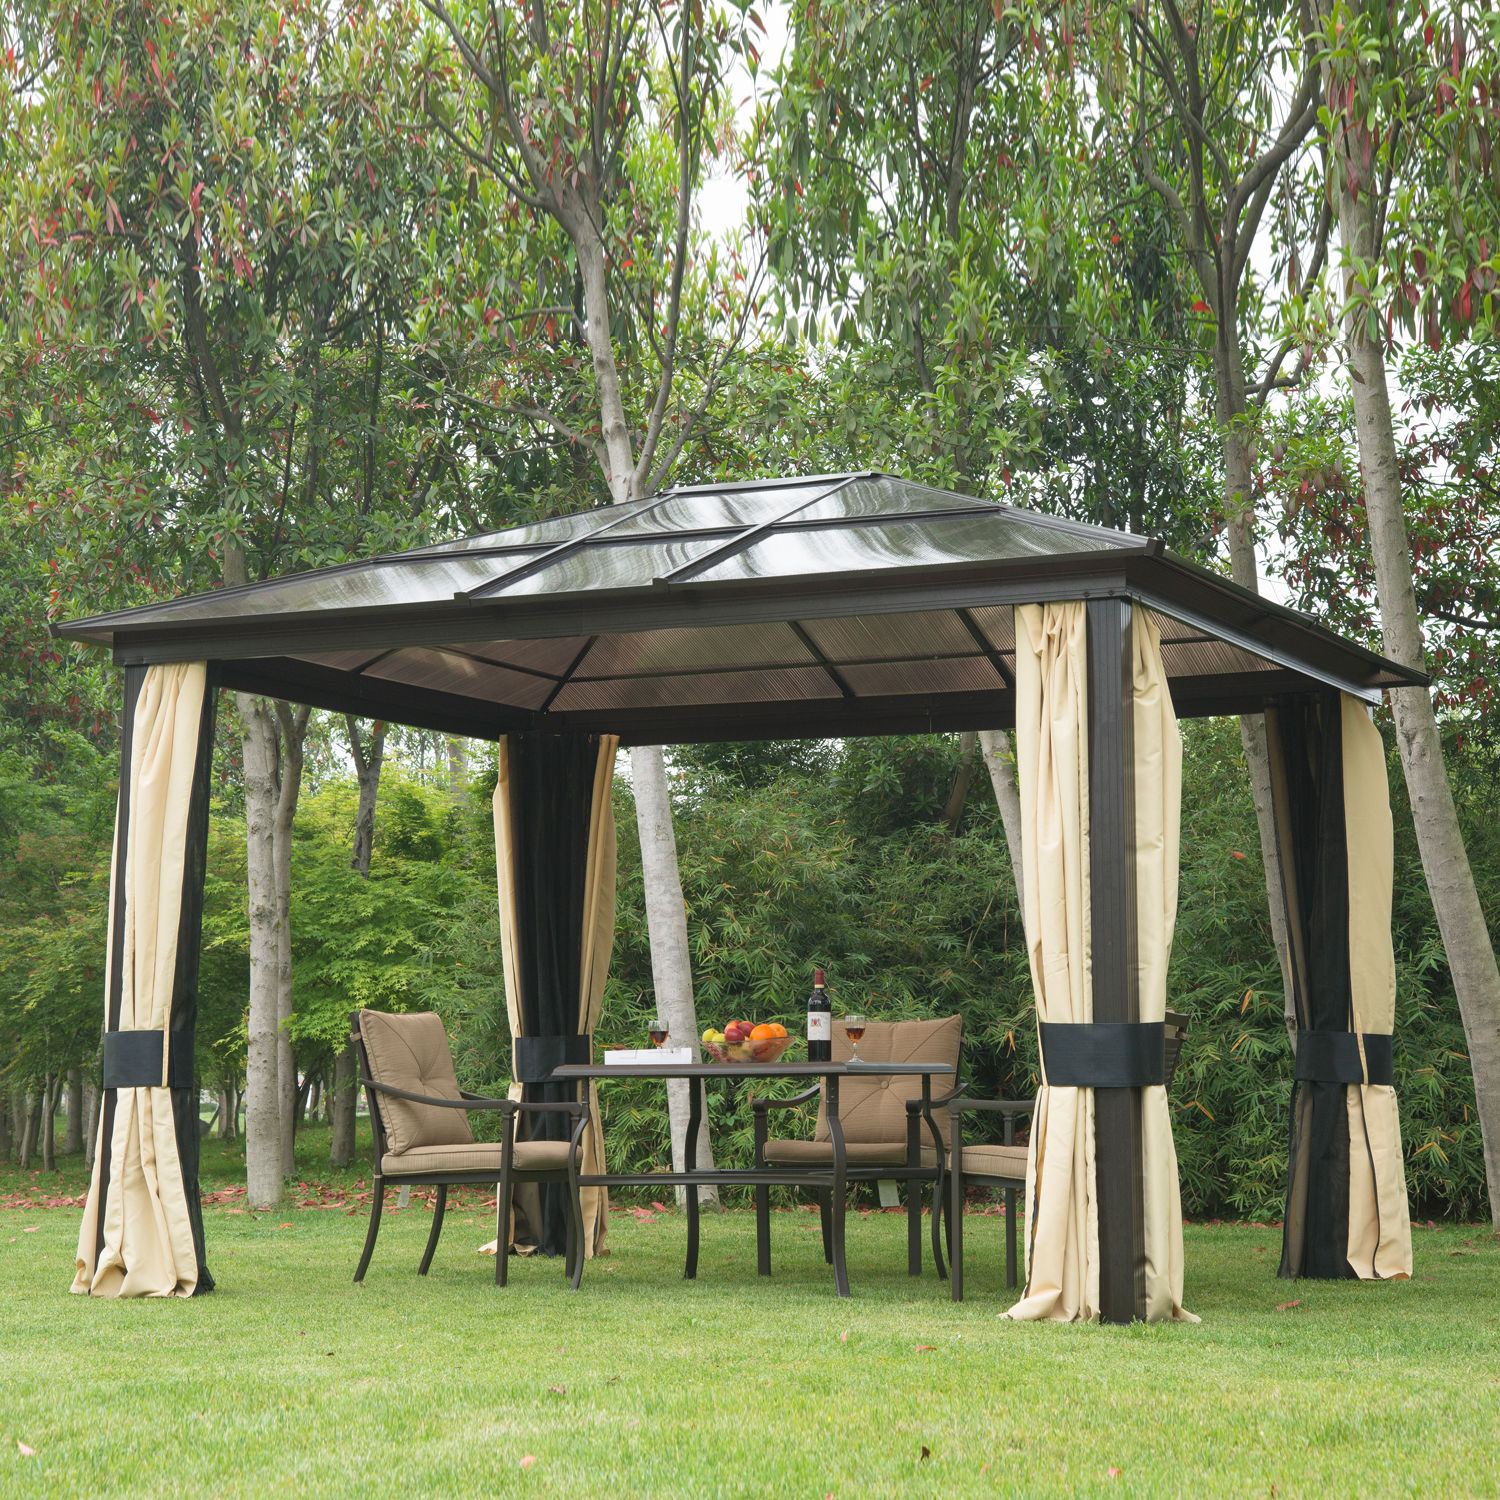 12u0027x10u0027 Outdoor Patio Canopy Party Gazebo Shelter Hardtop W/ Mesh And  Curtains